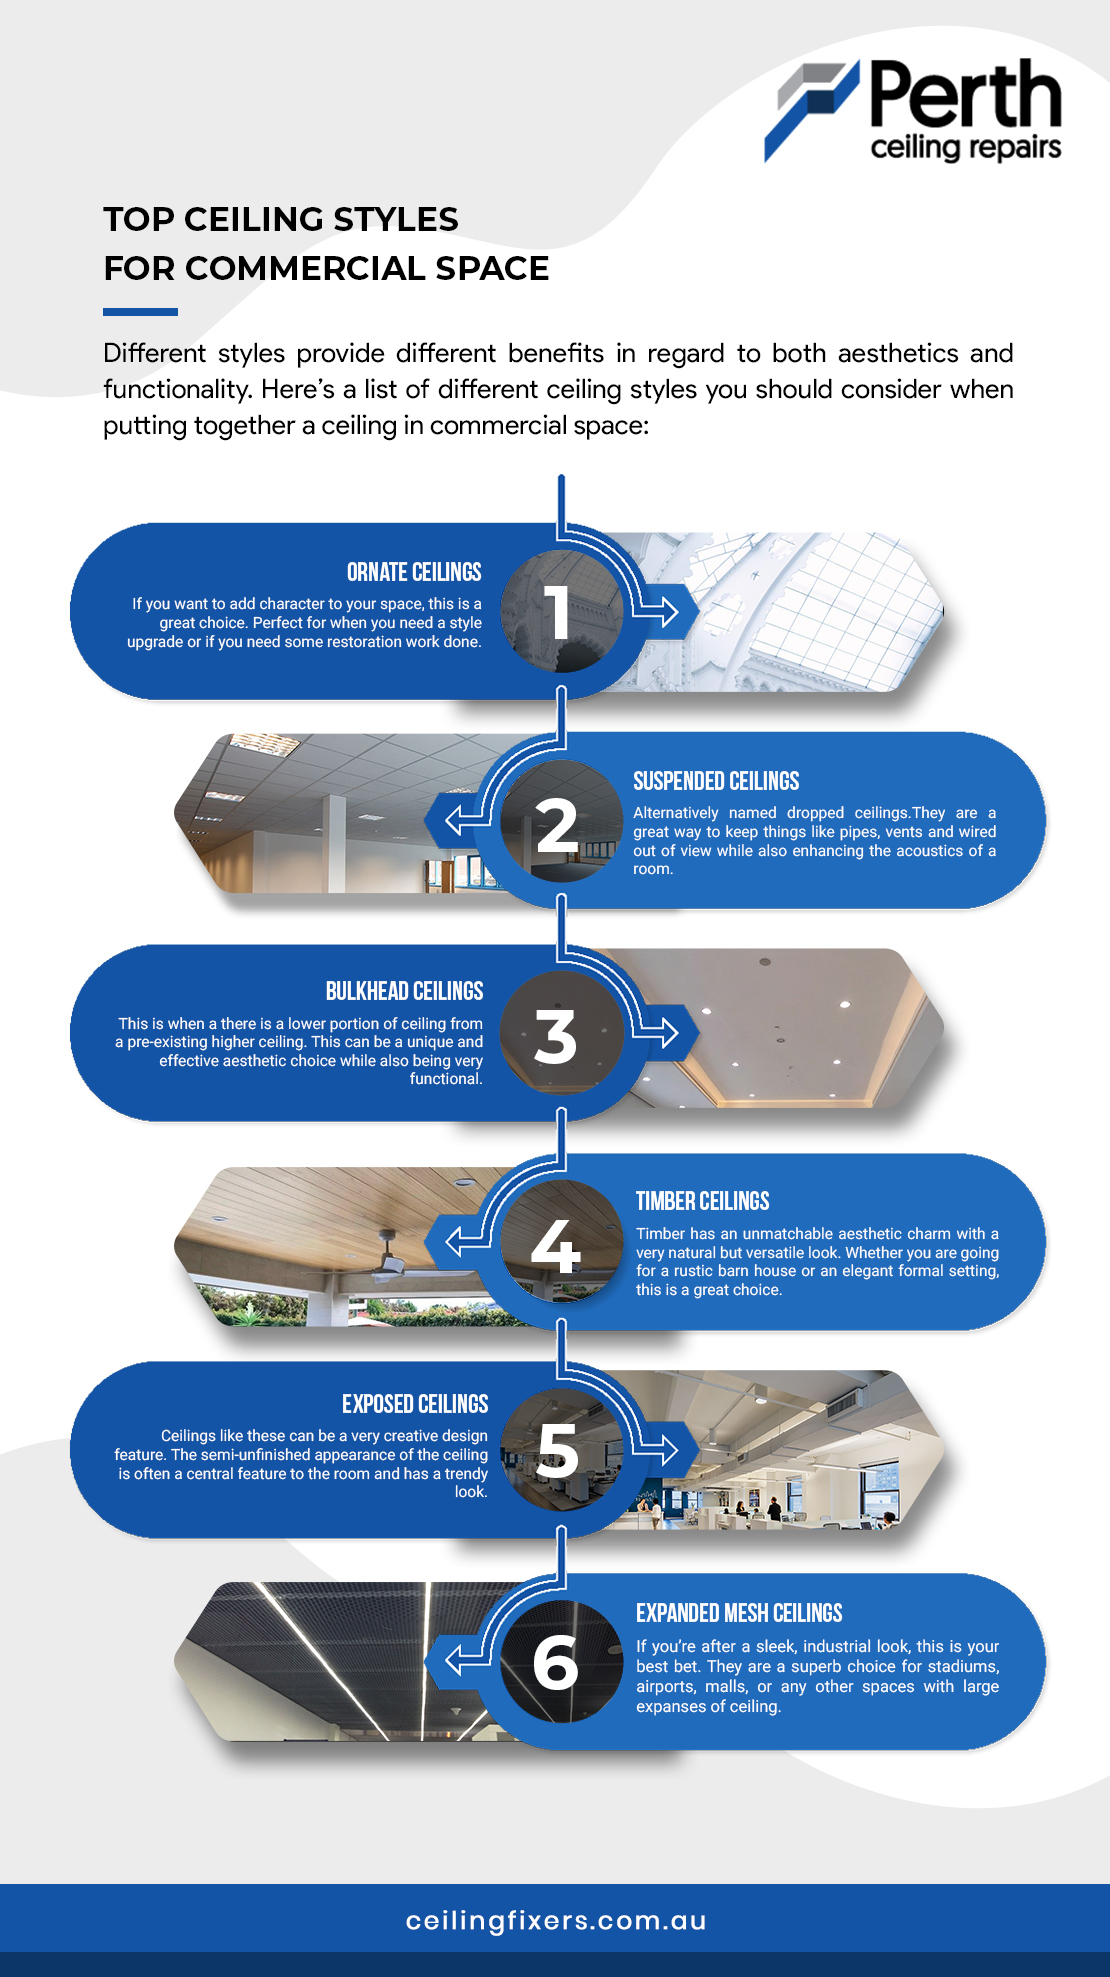 Top Ceiling Styles for Commercial Space (infographic)